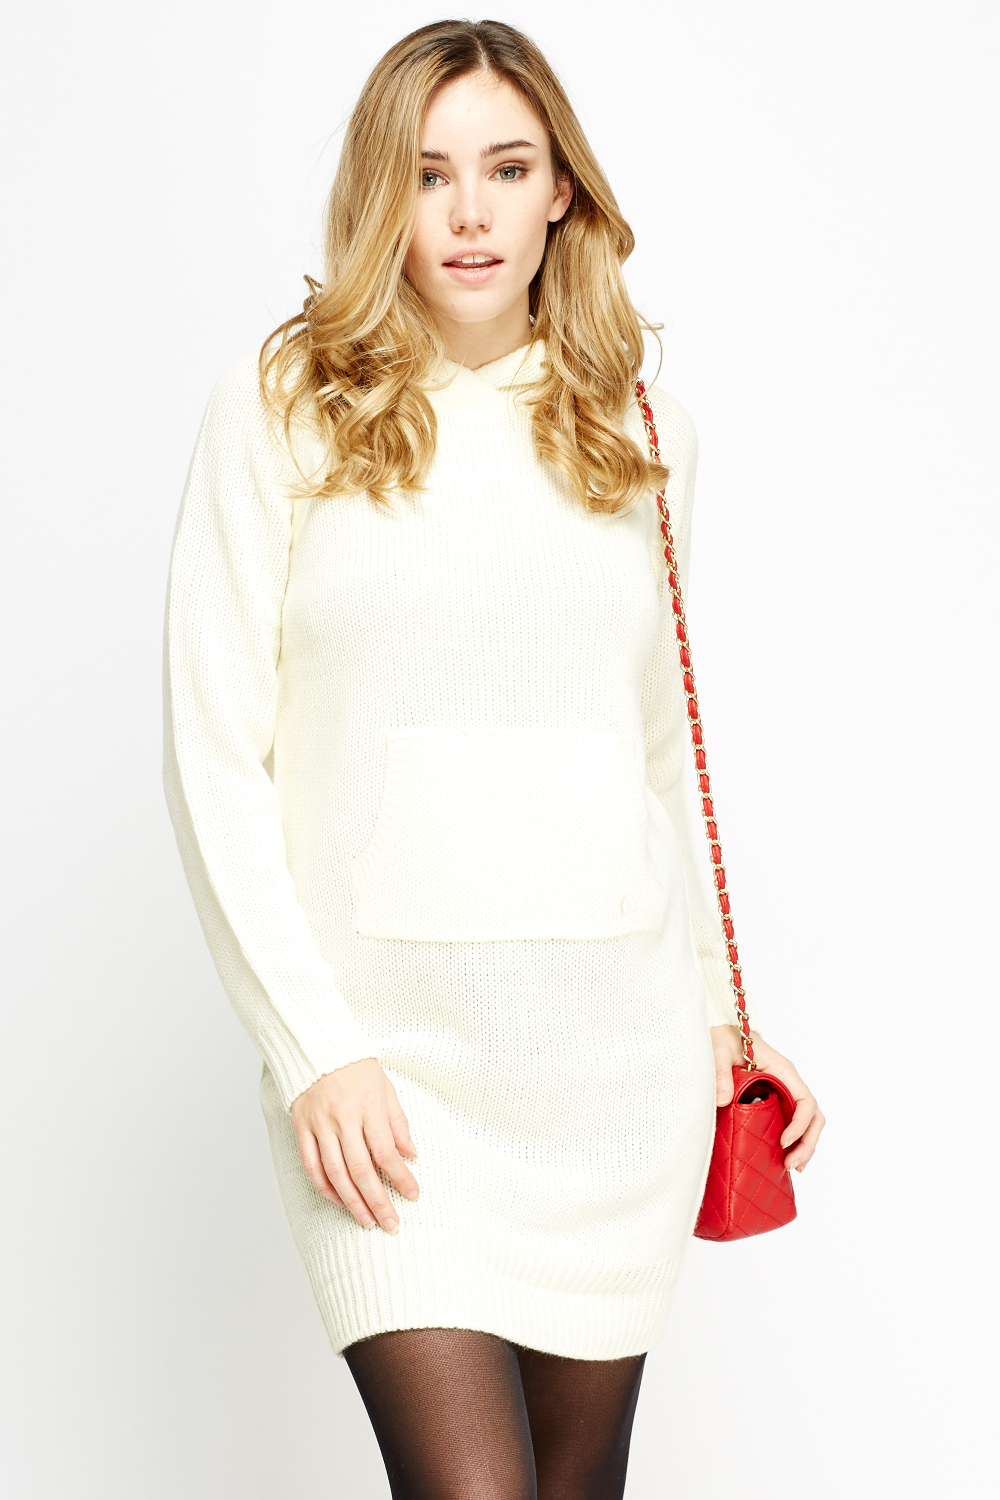 fb1f4ae6d7 Cream Knitted Hooded Jumper Dress - Just £5